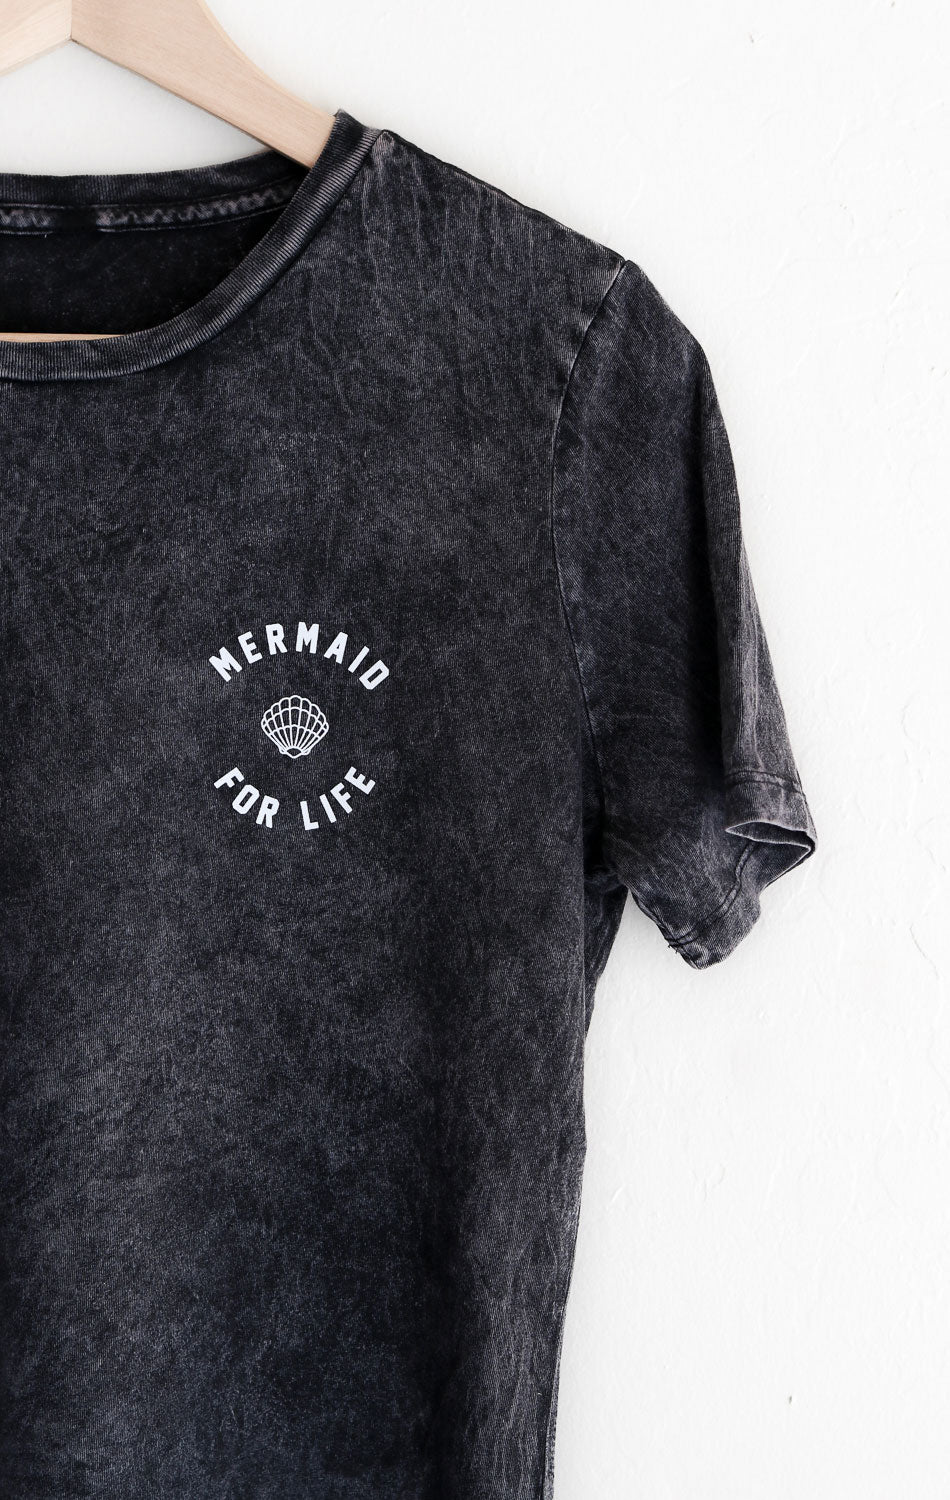 NYCT Clothing Mermaid For Life Relaxed Tee - Acid Wash Black